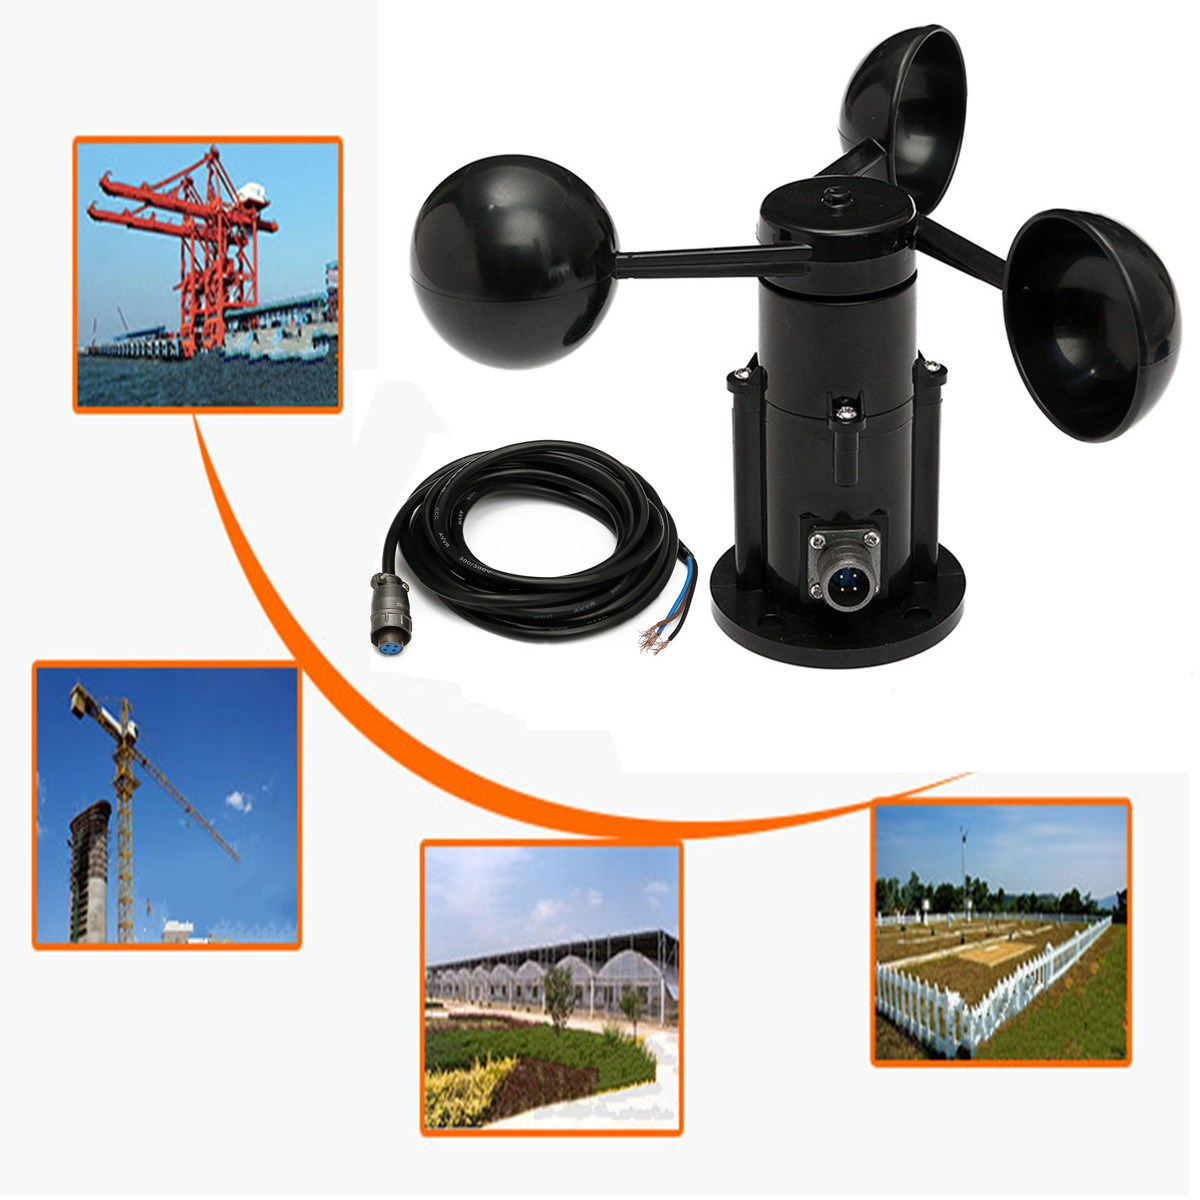 New  0-5V Voltage Wind Speed Sensor 360 degree Anemometer Three Cups Aluminium Alloyed Digital Pulse Signal Output 4 20ma 0 5v 0 10v wind direction sensor anemometer small weather station parts from factory